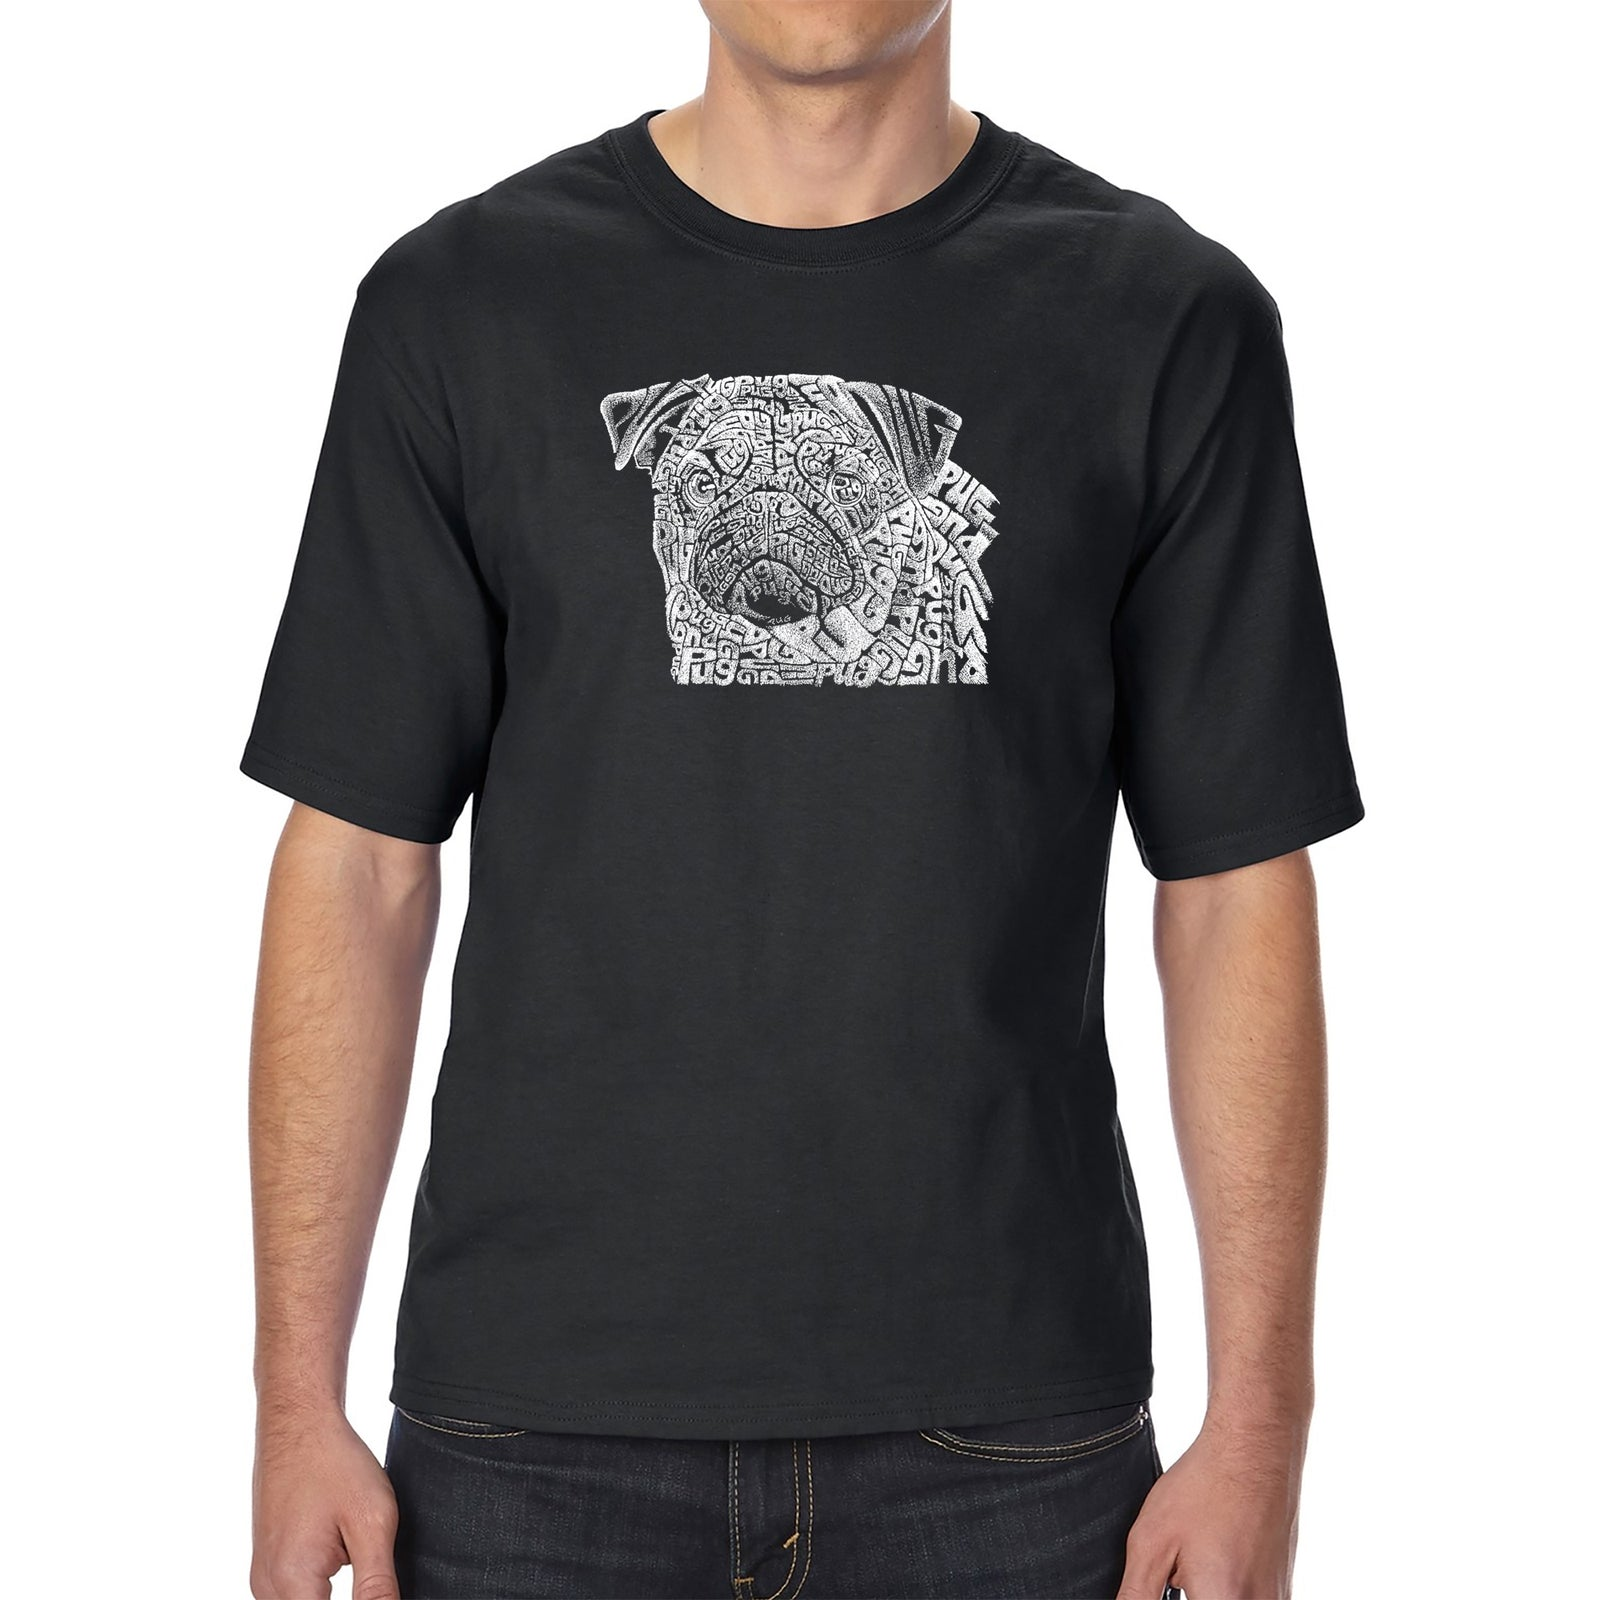 Men's Tall and Long Word Art T-shirt - Pug Face